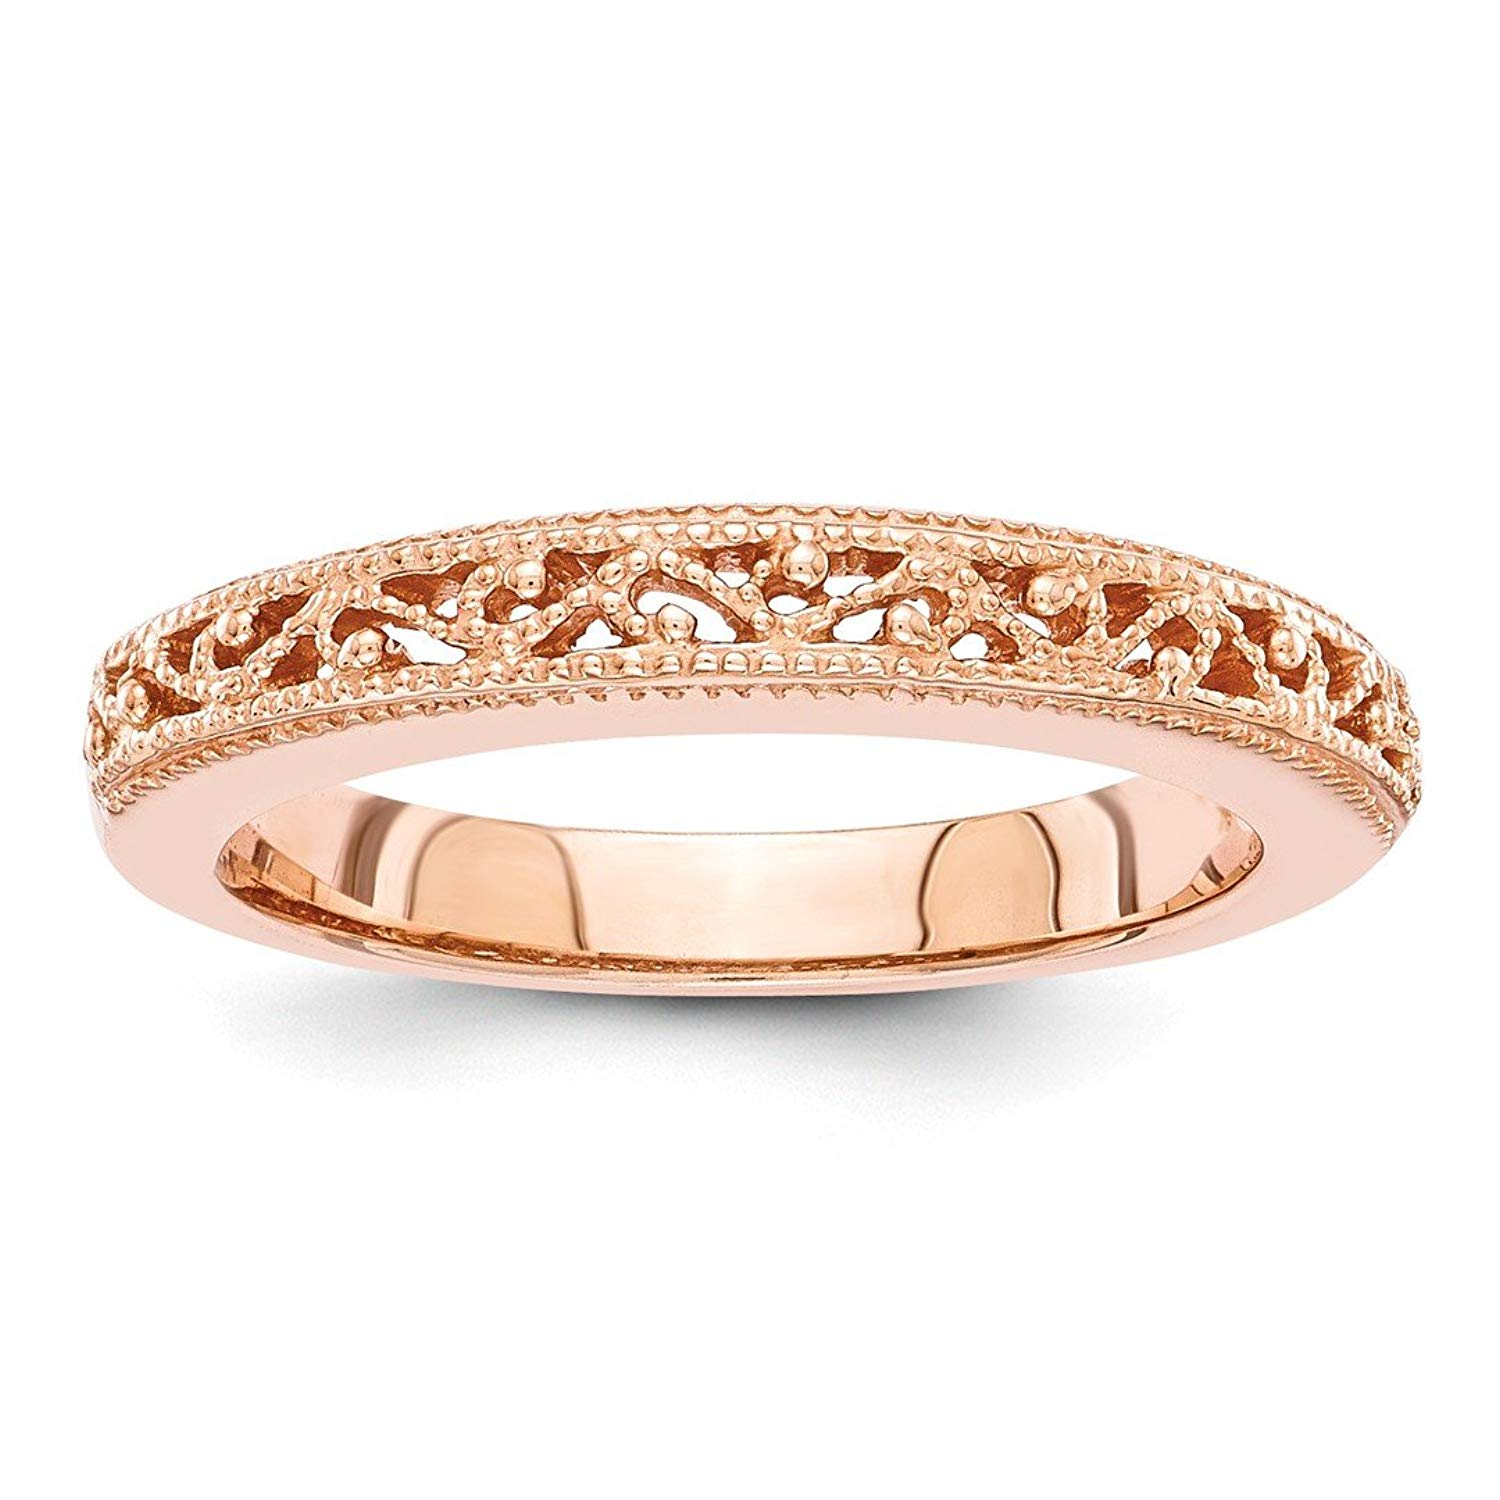 ICE CARATS 14kt Rose Gold Wedding Ring Band Fancy Fine Jewelry Ideal Gifts For Women Gift Set From Heart